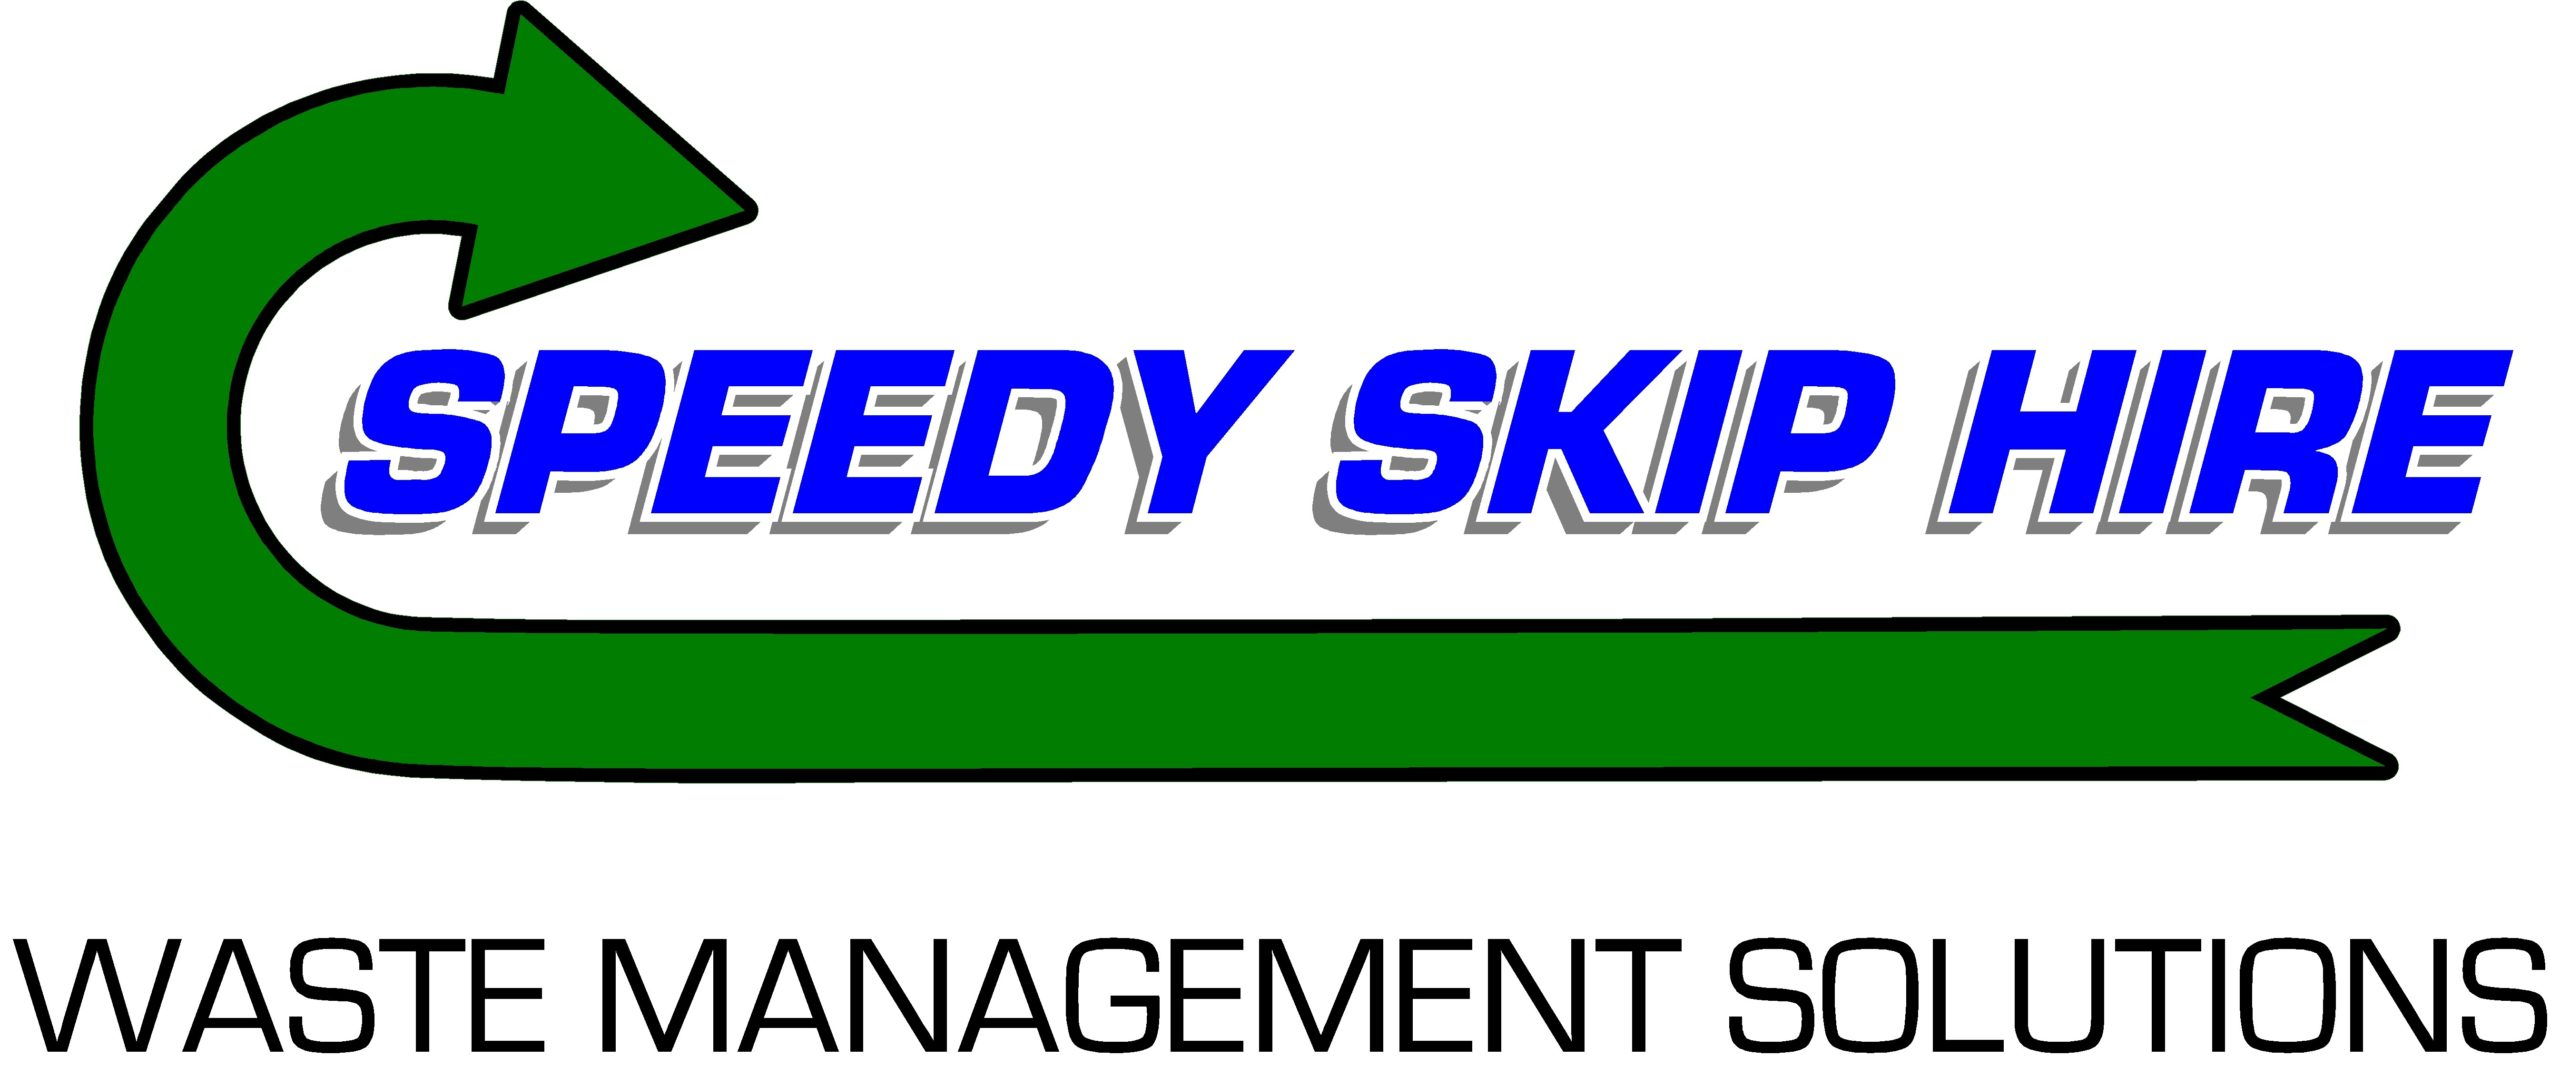 Speedy Waste Management Solutions